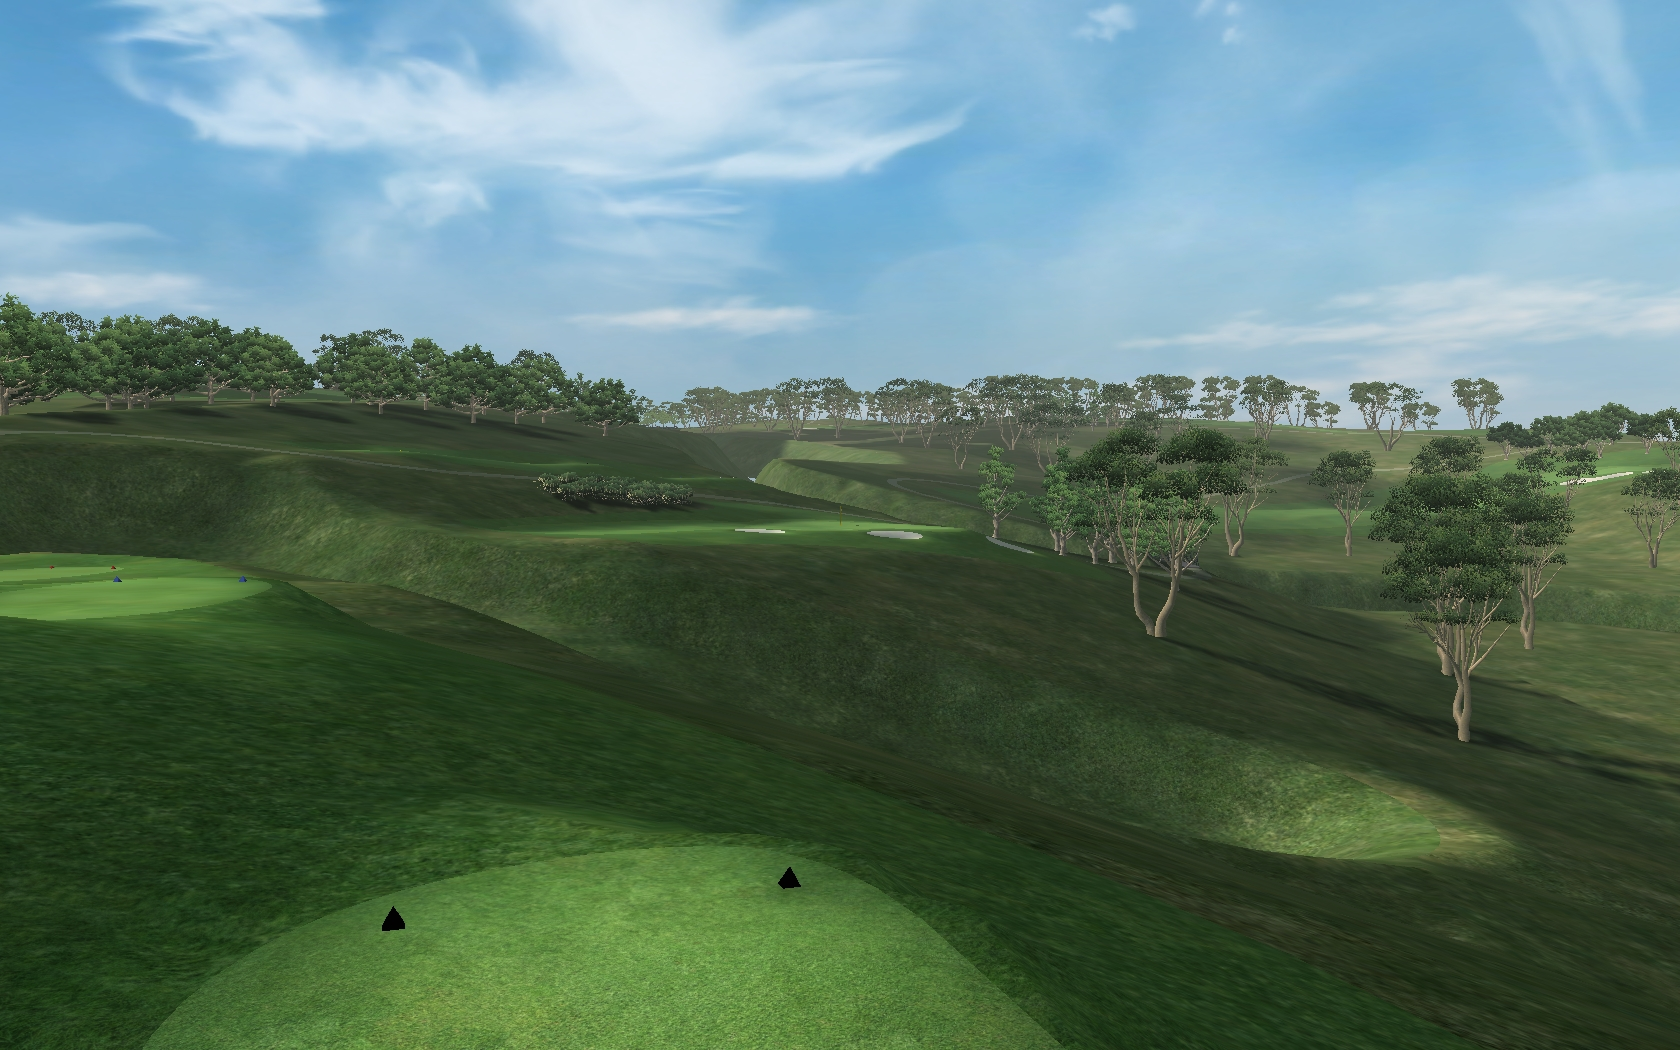 Picture of Kauri Cliffs - click to view original size